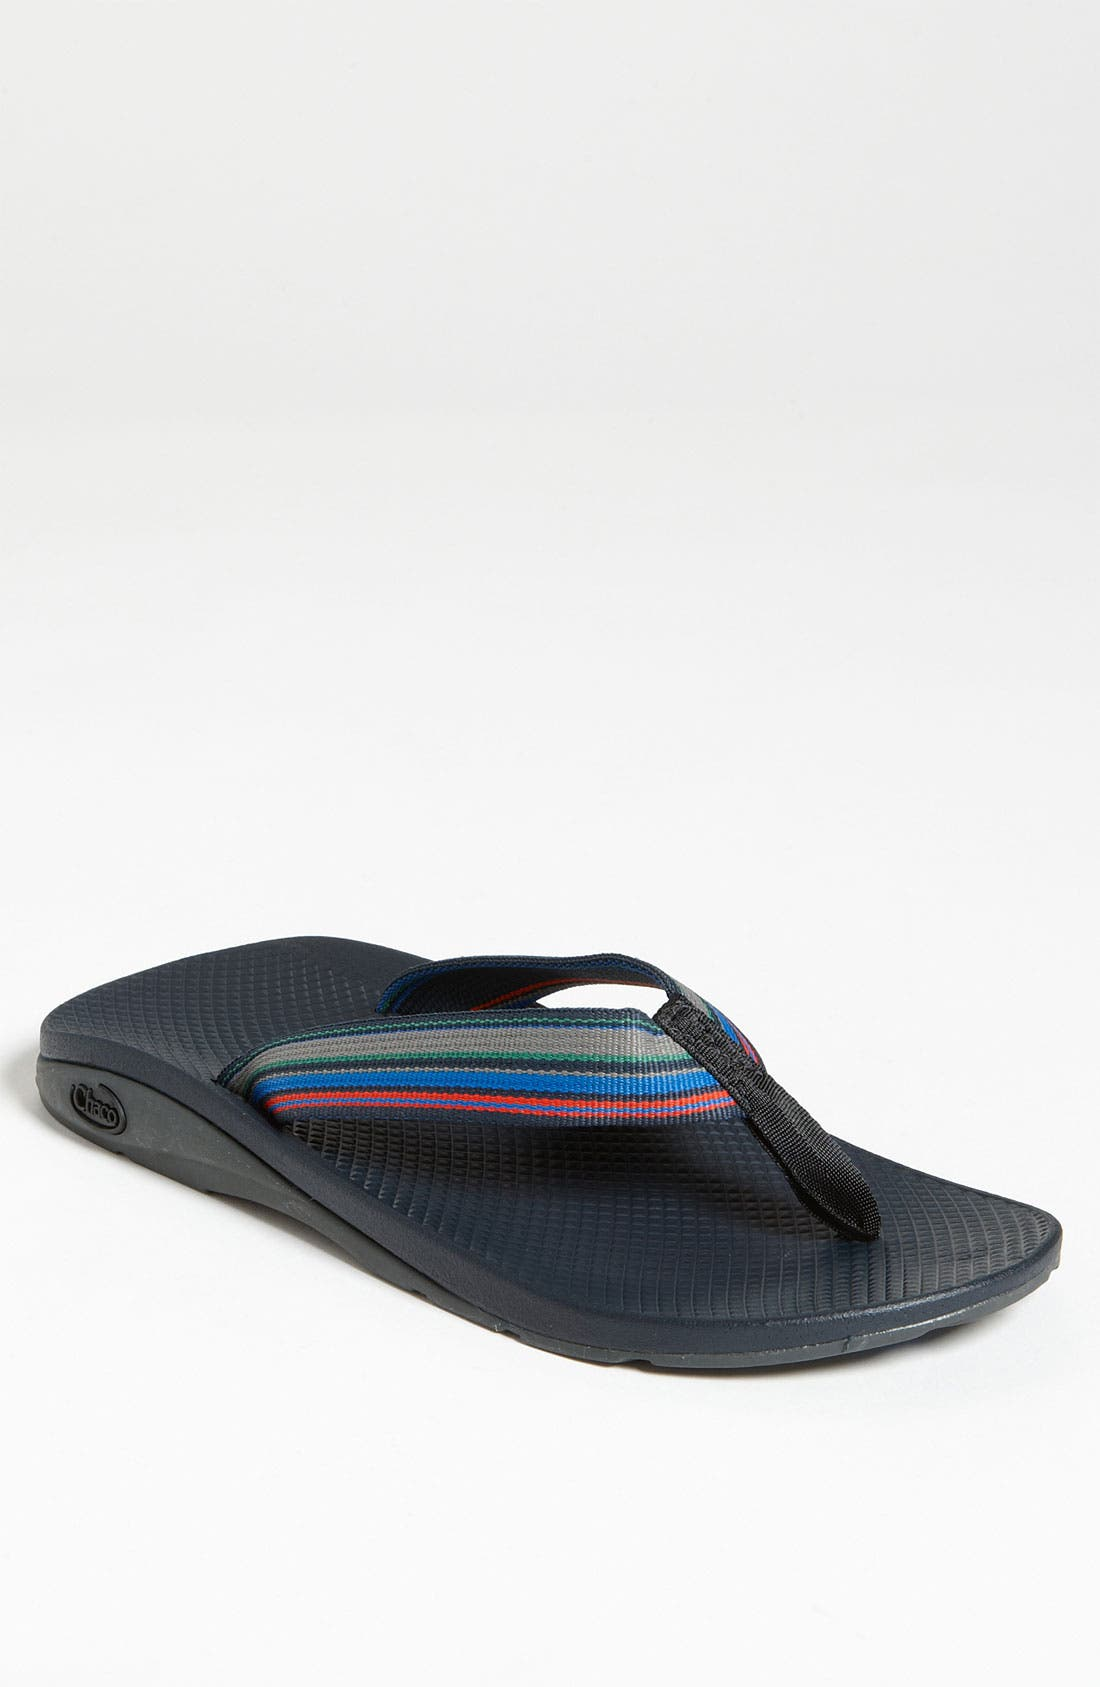 Alternate Image 1 Selected - Chaco 'Flip' Flip Flop